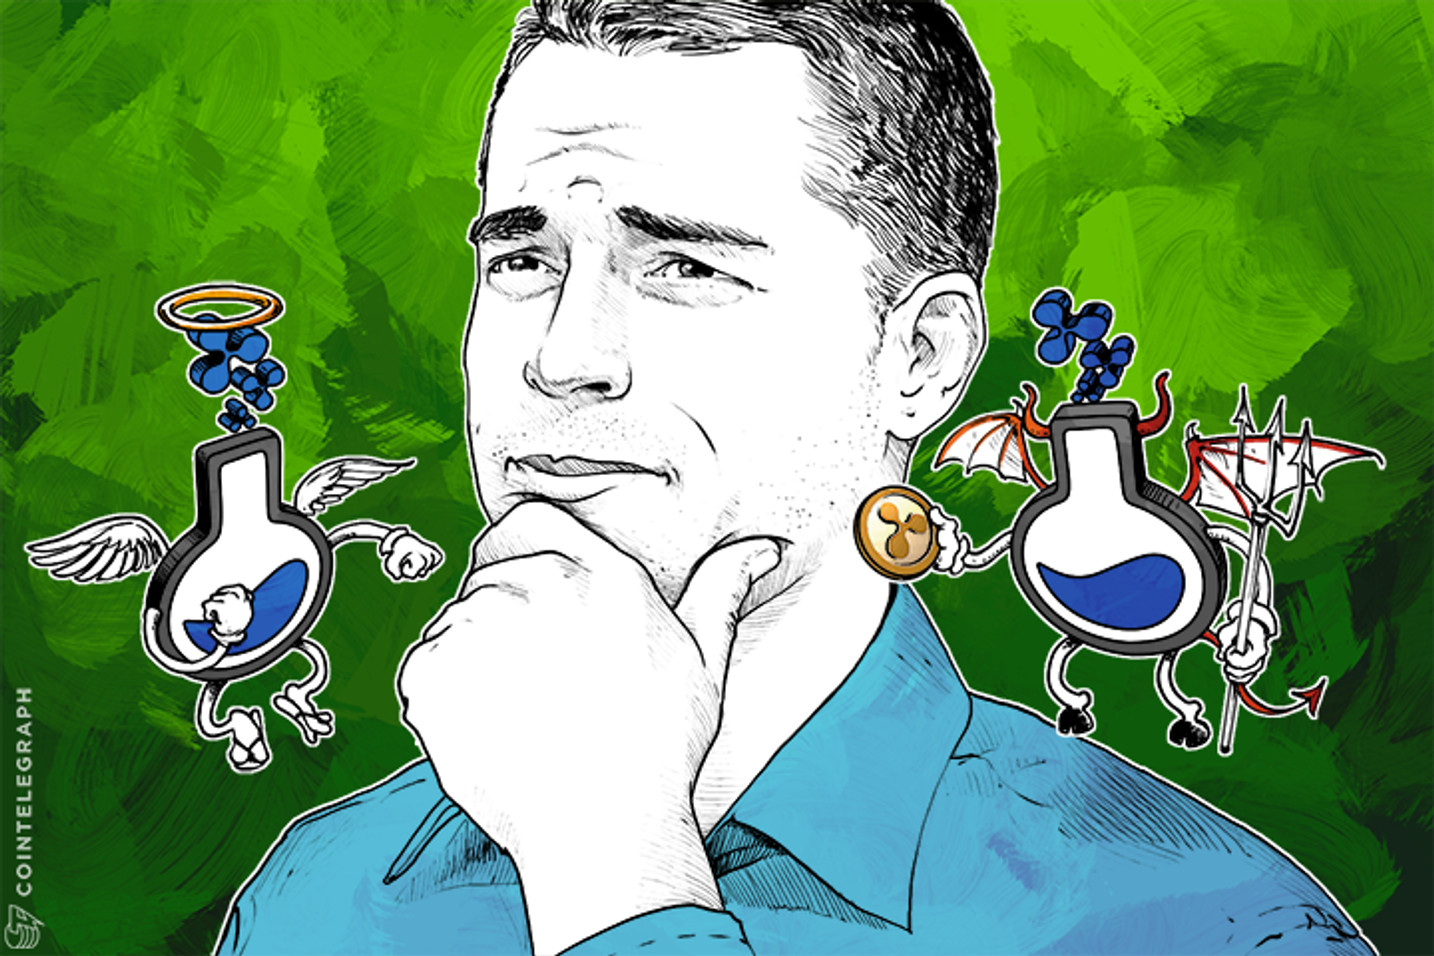 Roger Ver Shouldn't Be Allowed to Buy Stuff, and Neither Should You (Op-Ed)